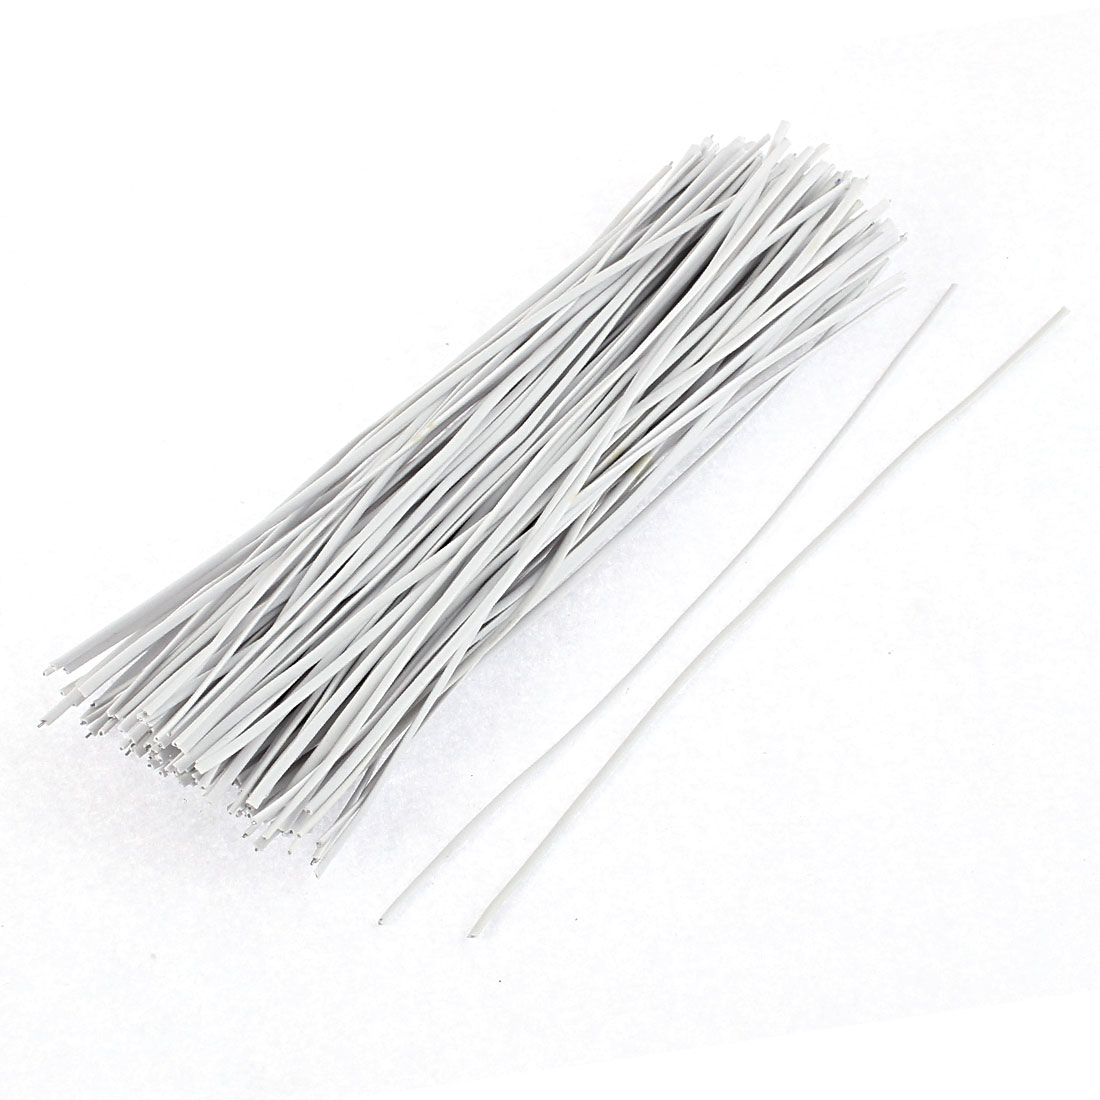 Buy plastic coated wires and get free shipping on AliExpress.com